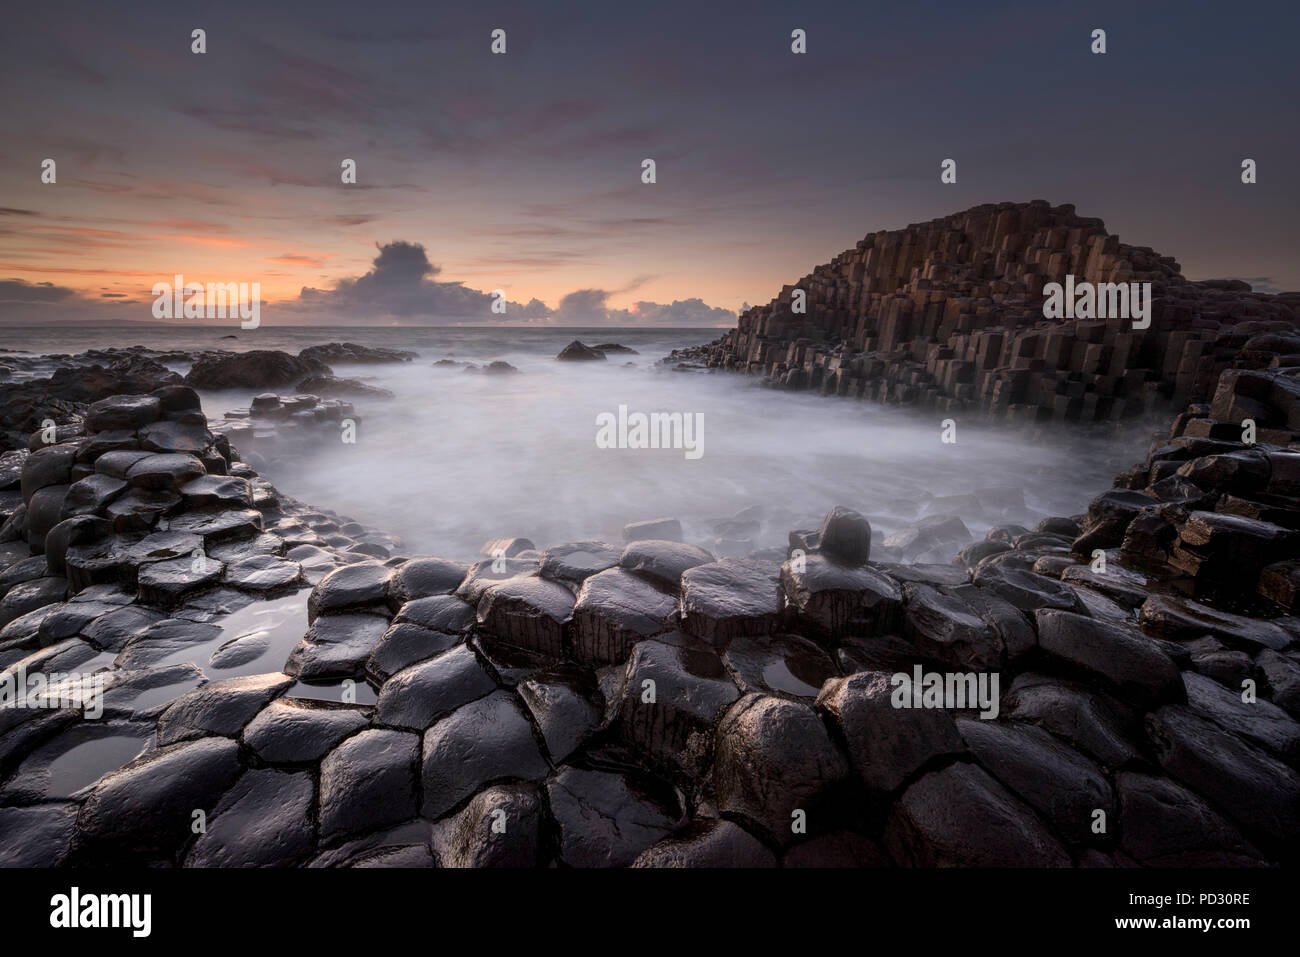 Giant's Causeway, County Antrim, Northern Ireland, UK - Stock Image